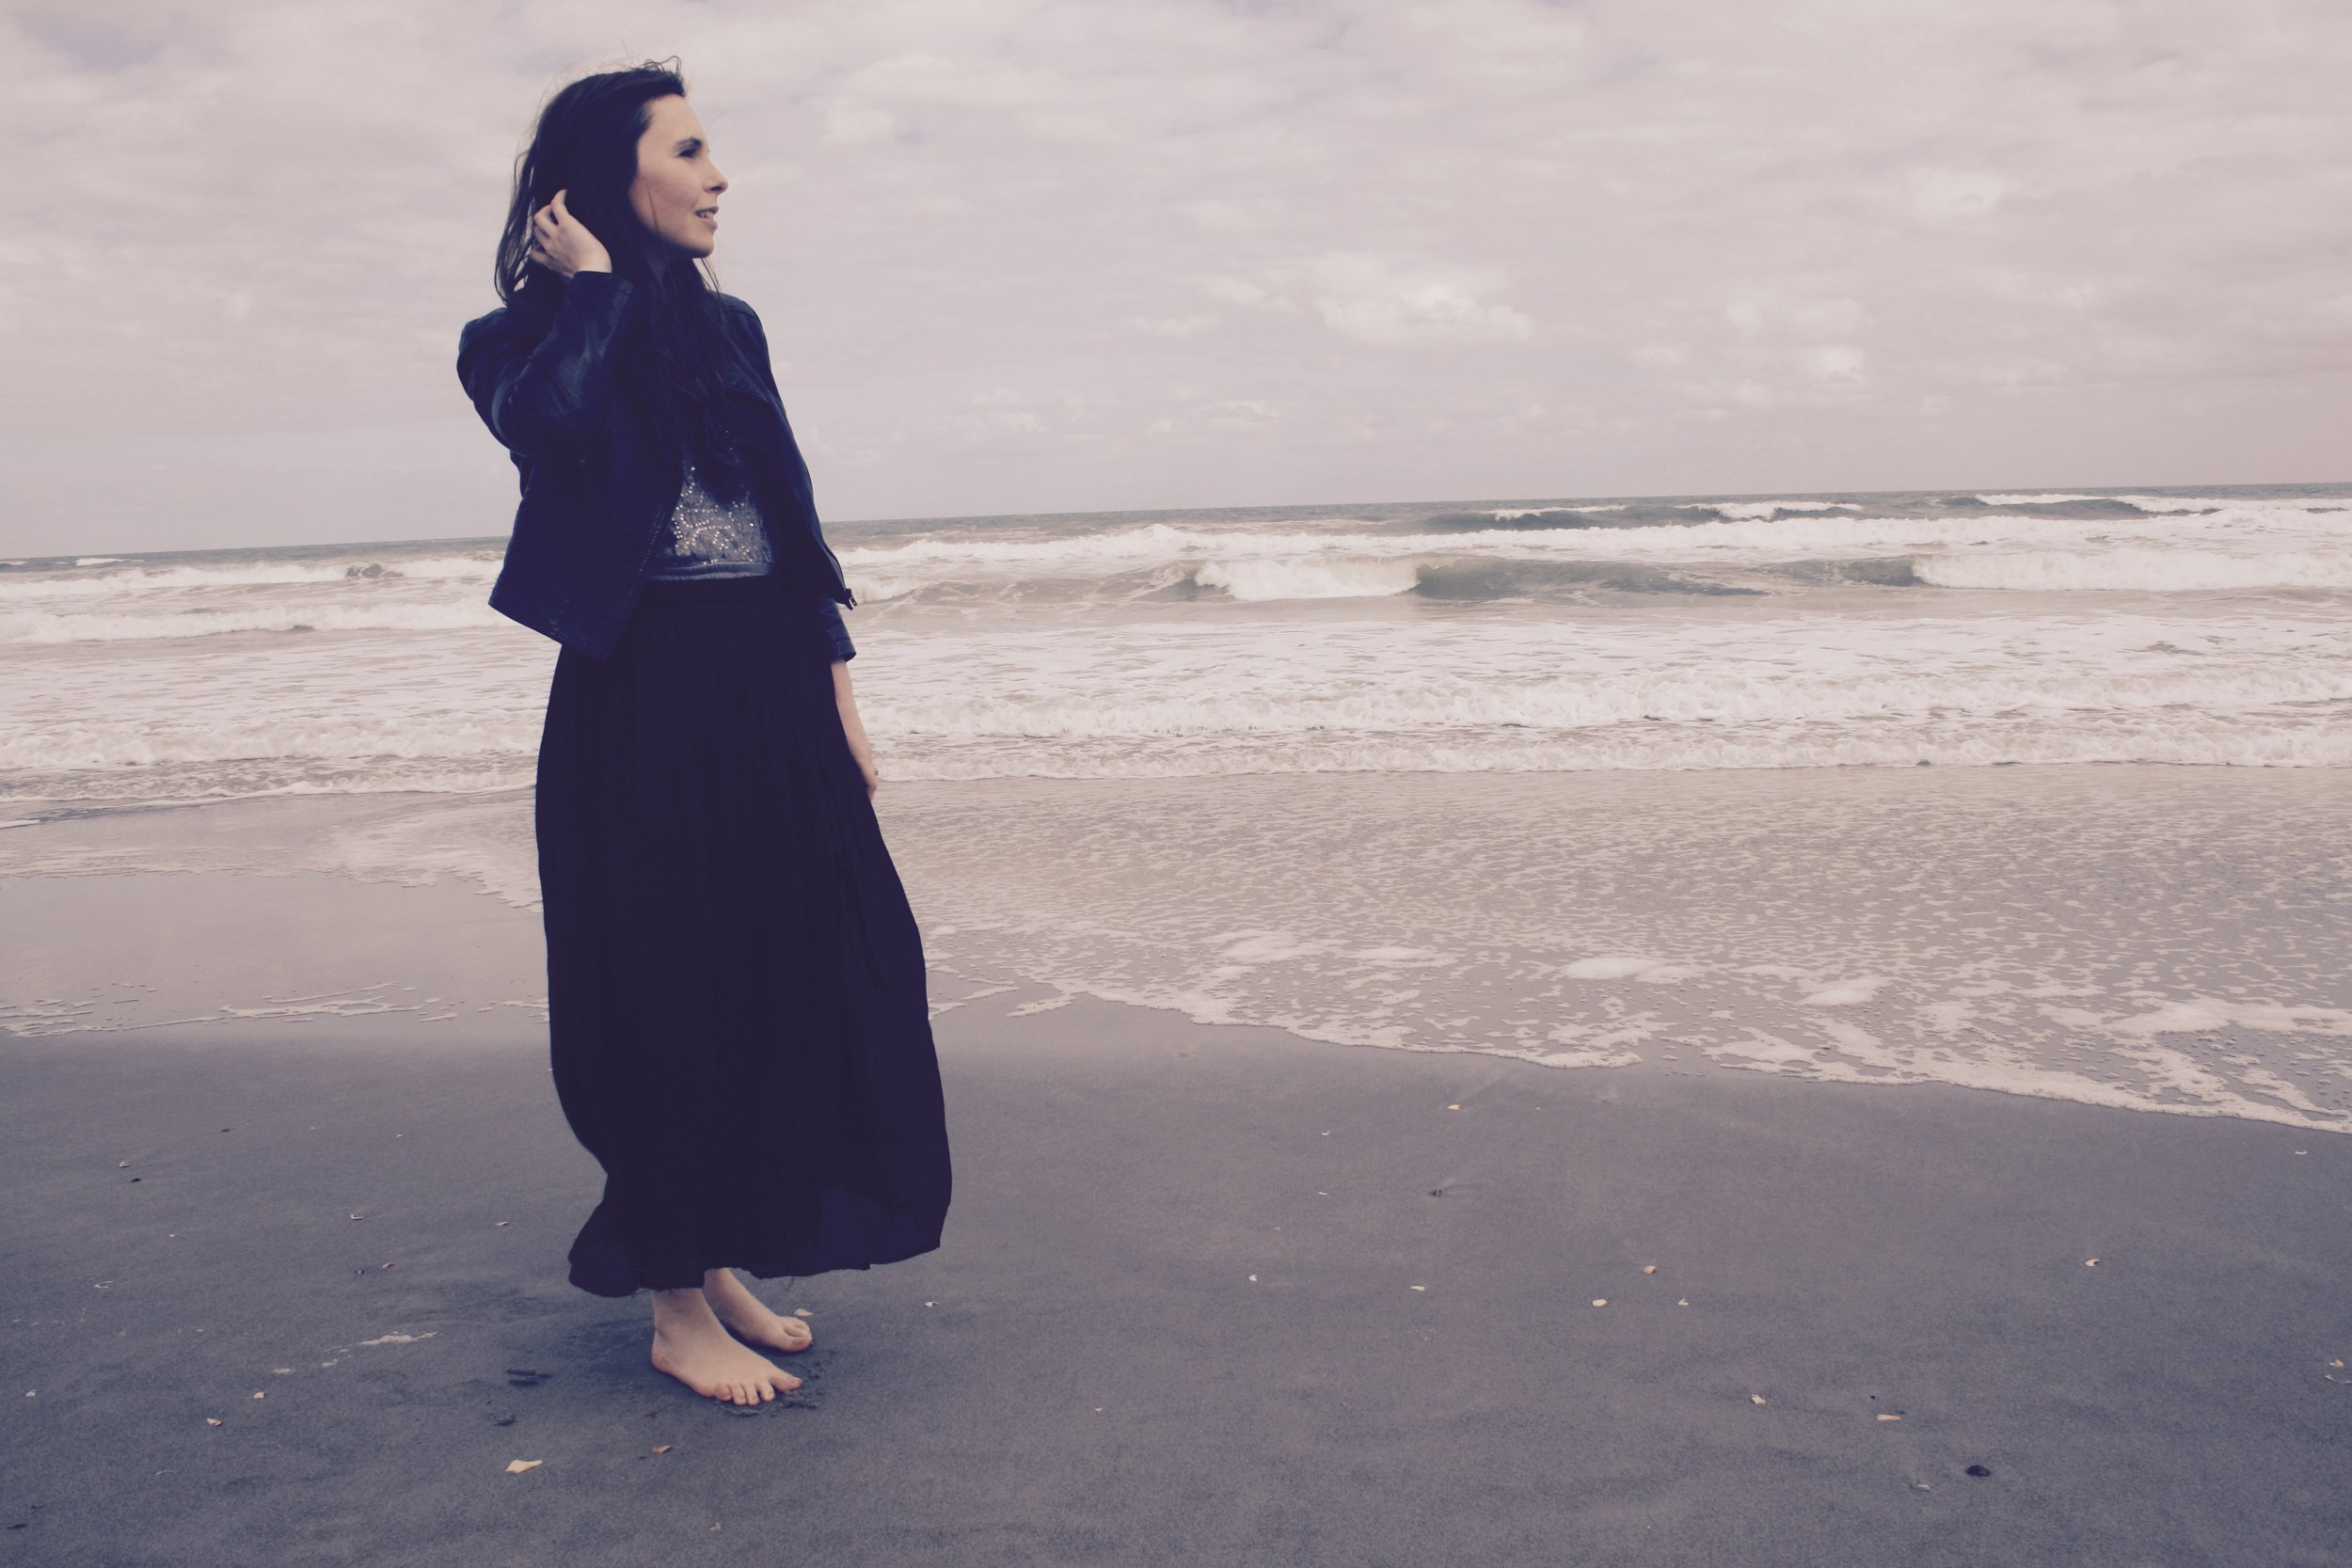 Ashley Barney points us to Christ with this poem and meditation. Check out the   ChurchFolk setting    of her new song .